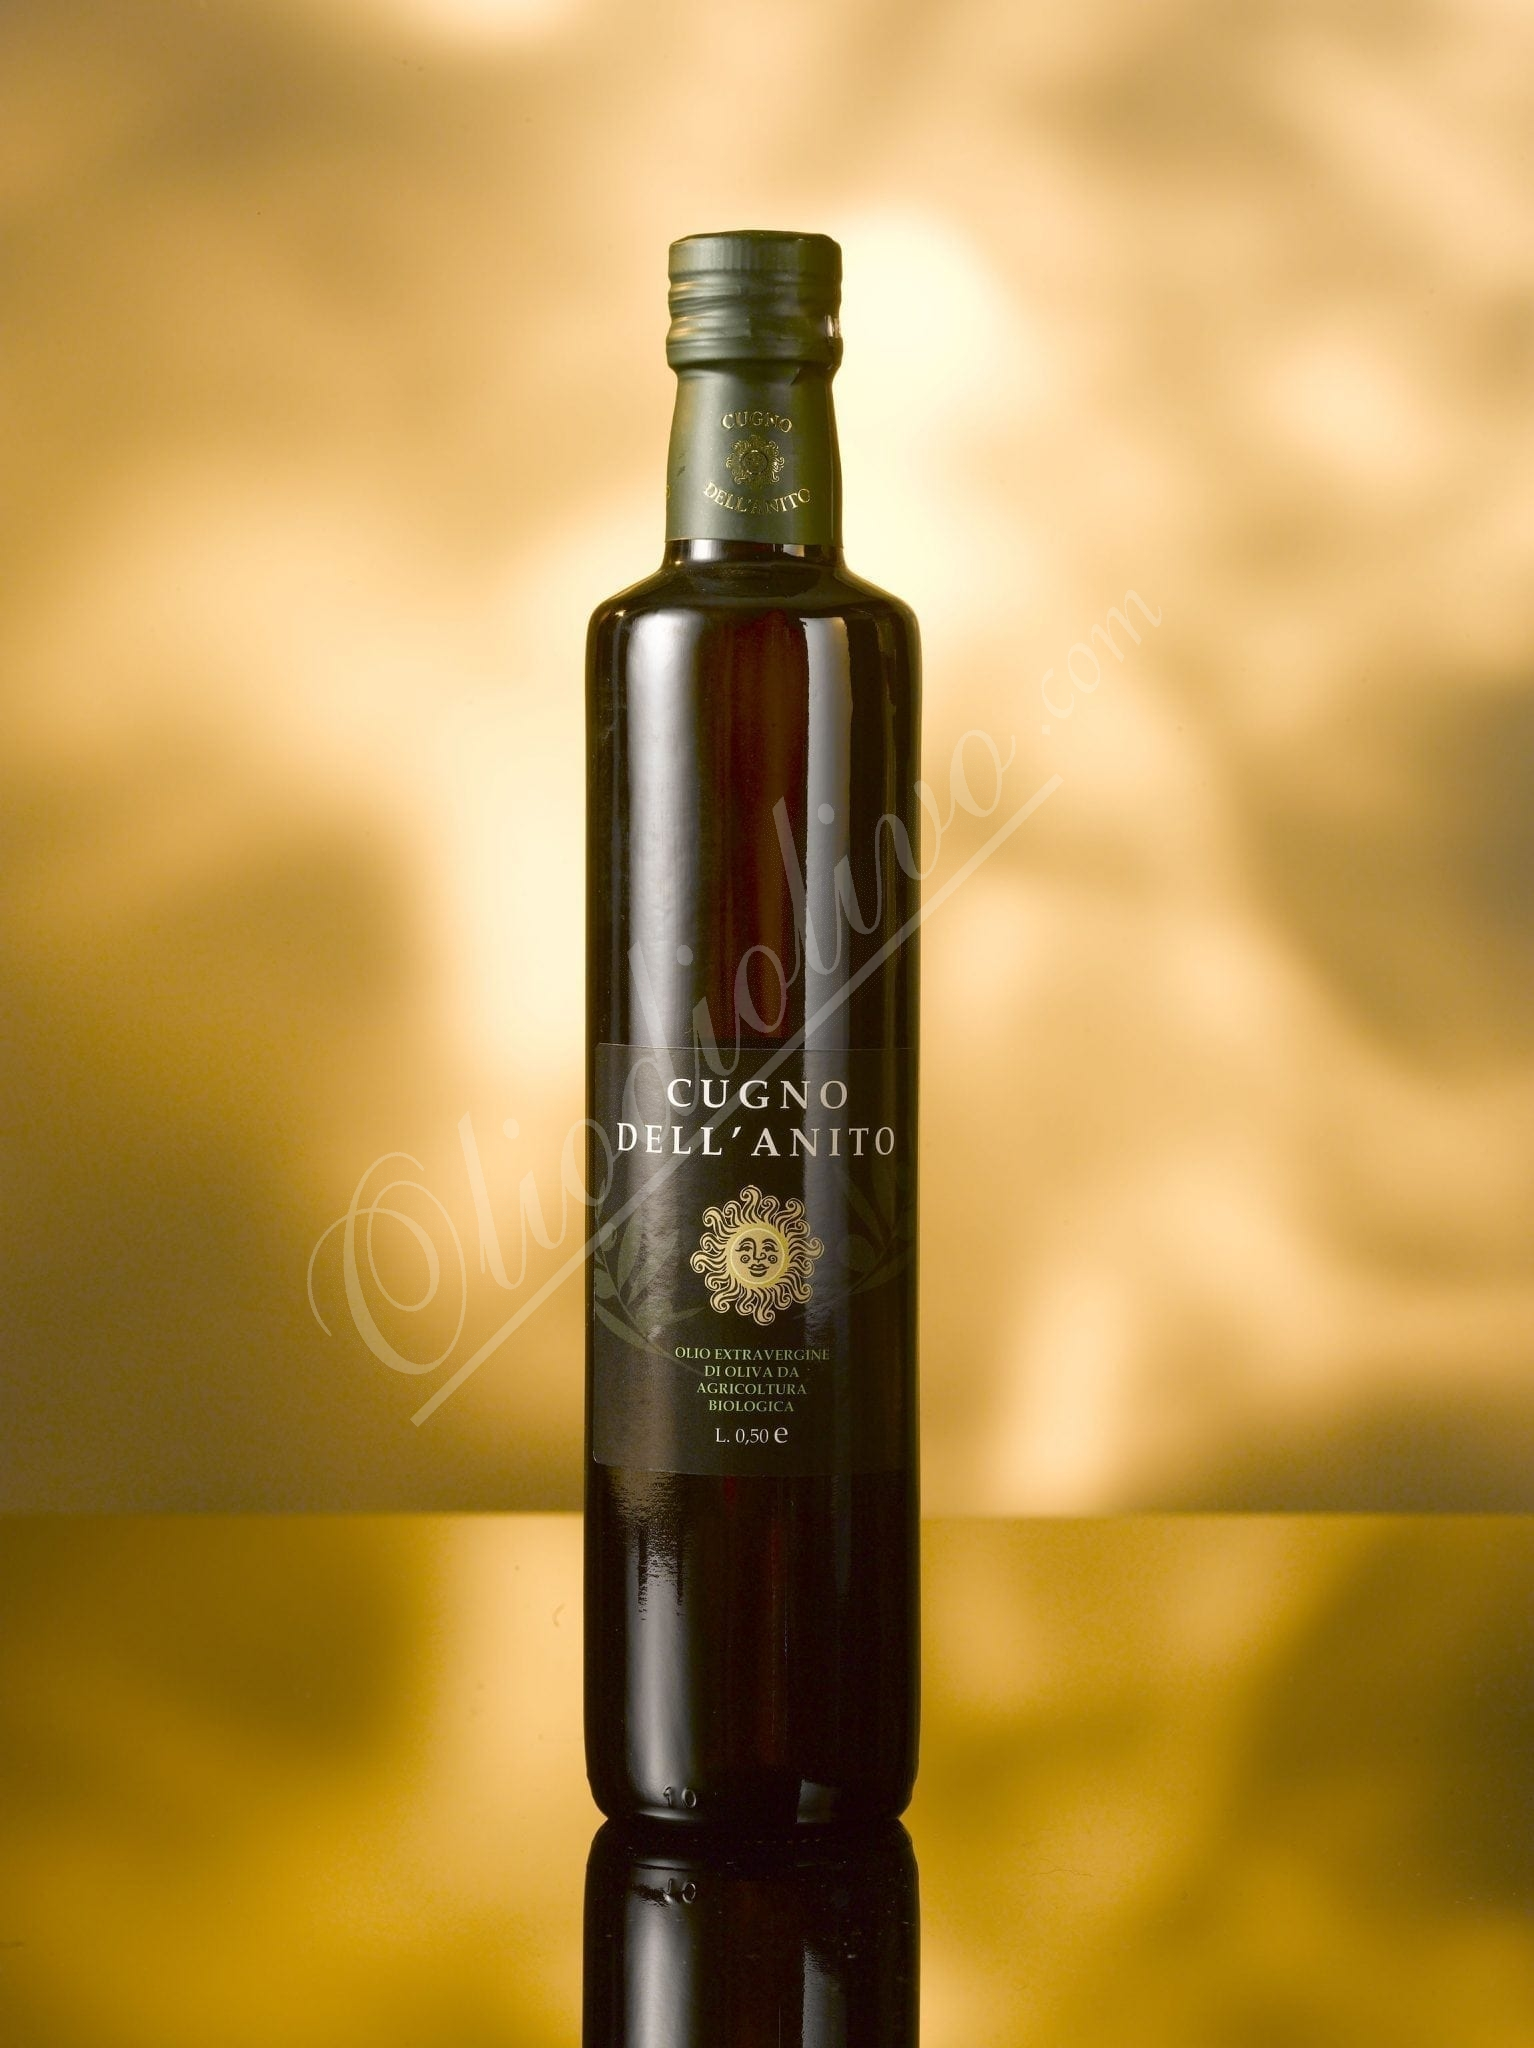 Blend, Cugno Dell'Anito, olive oil Sicily, 500ml